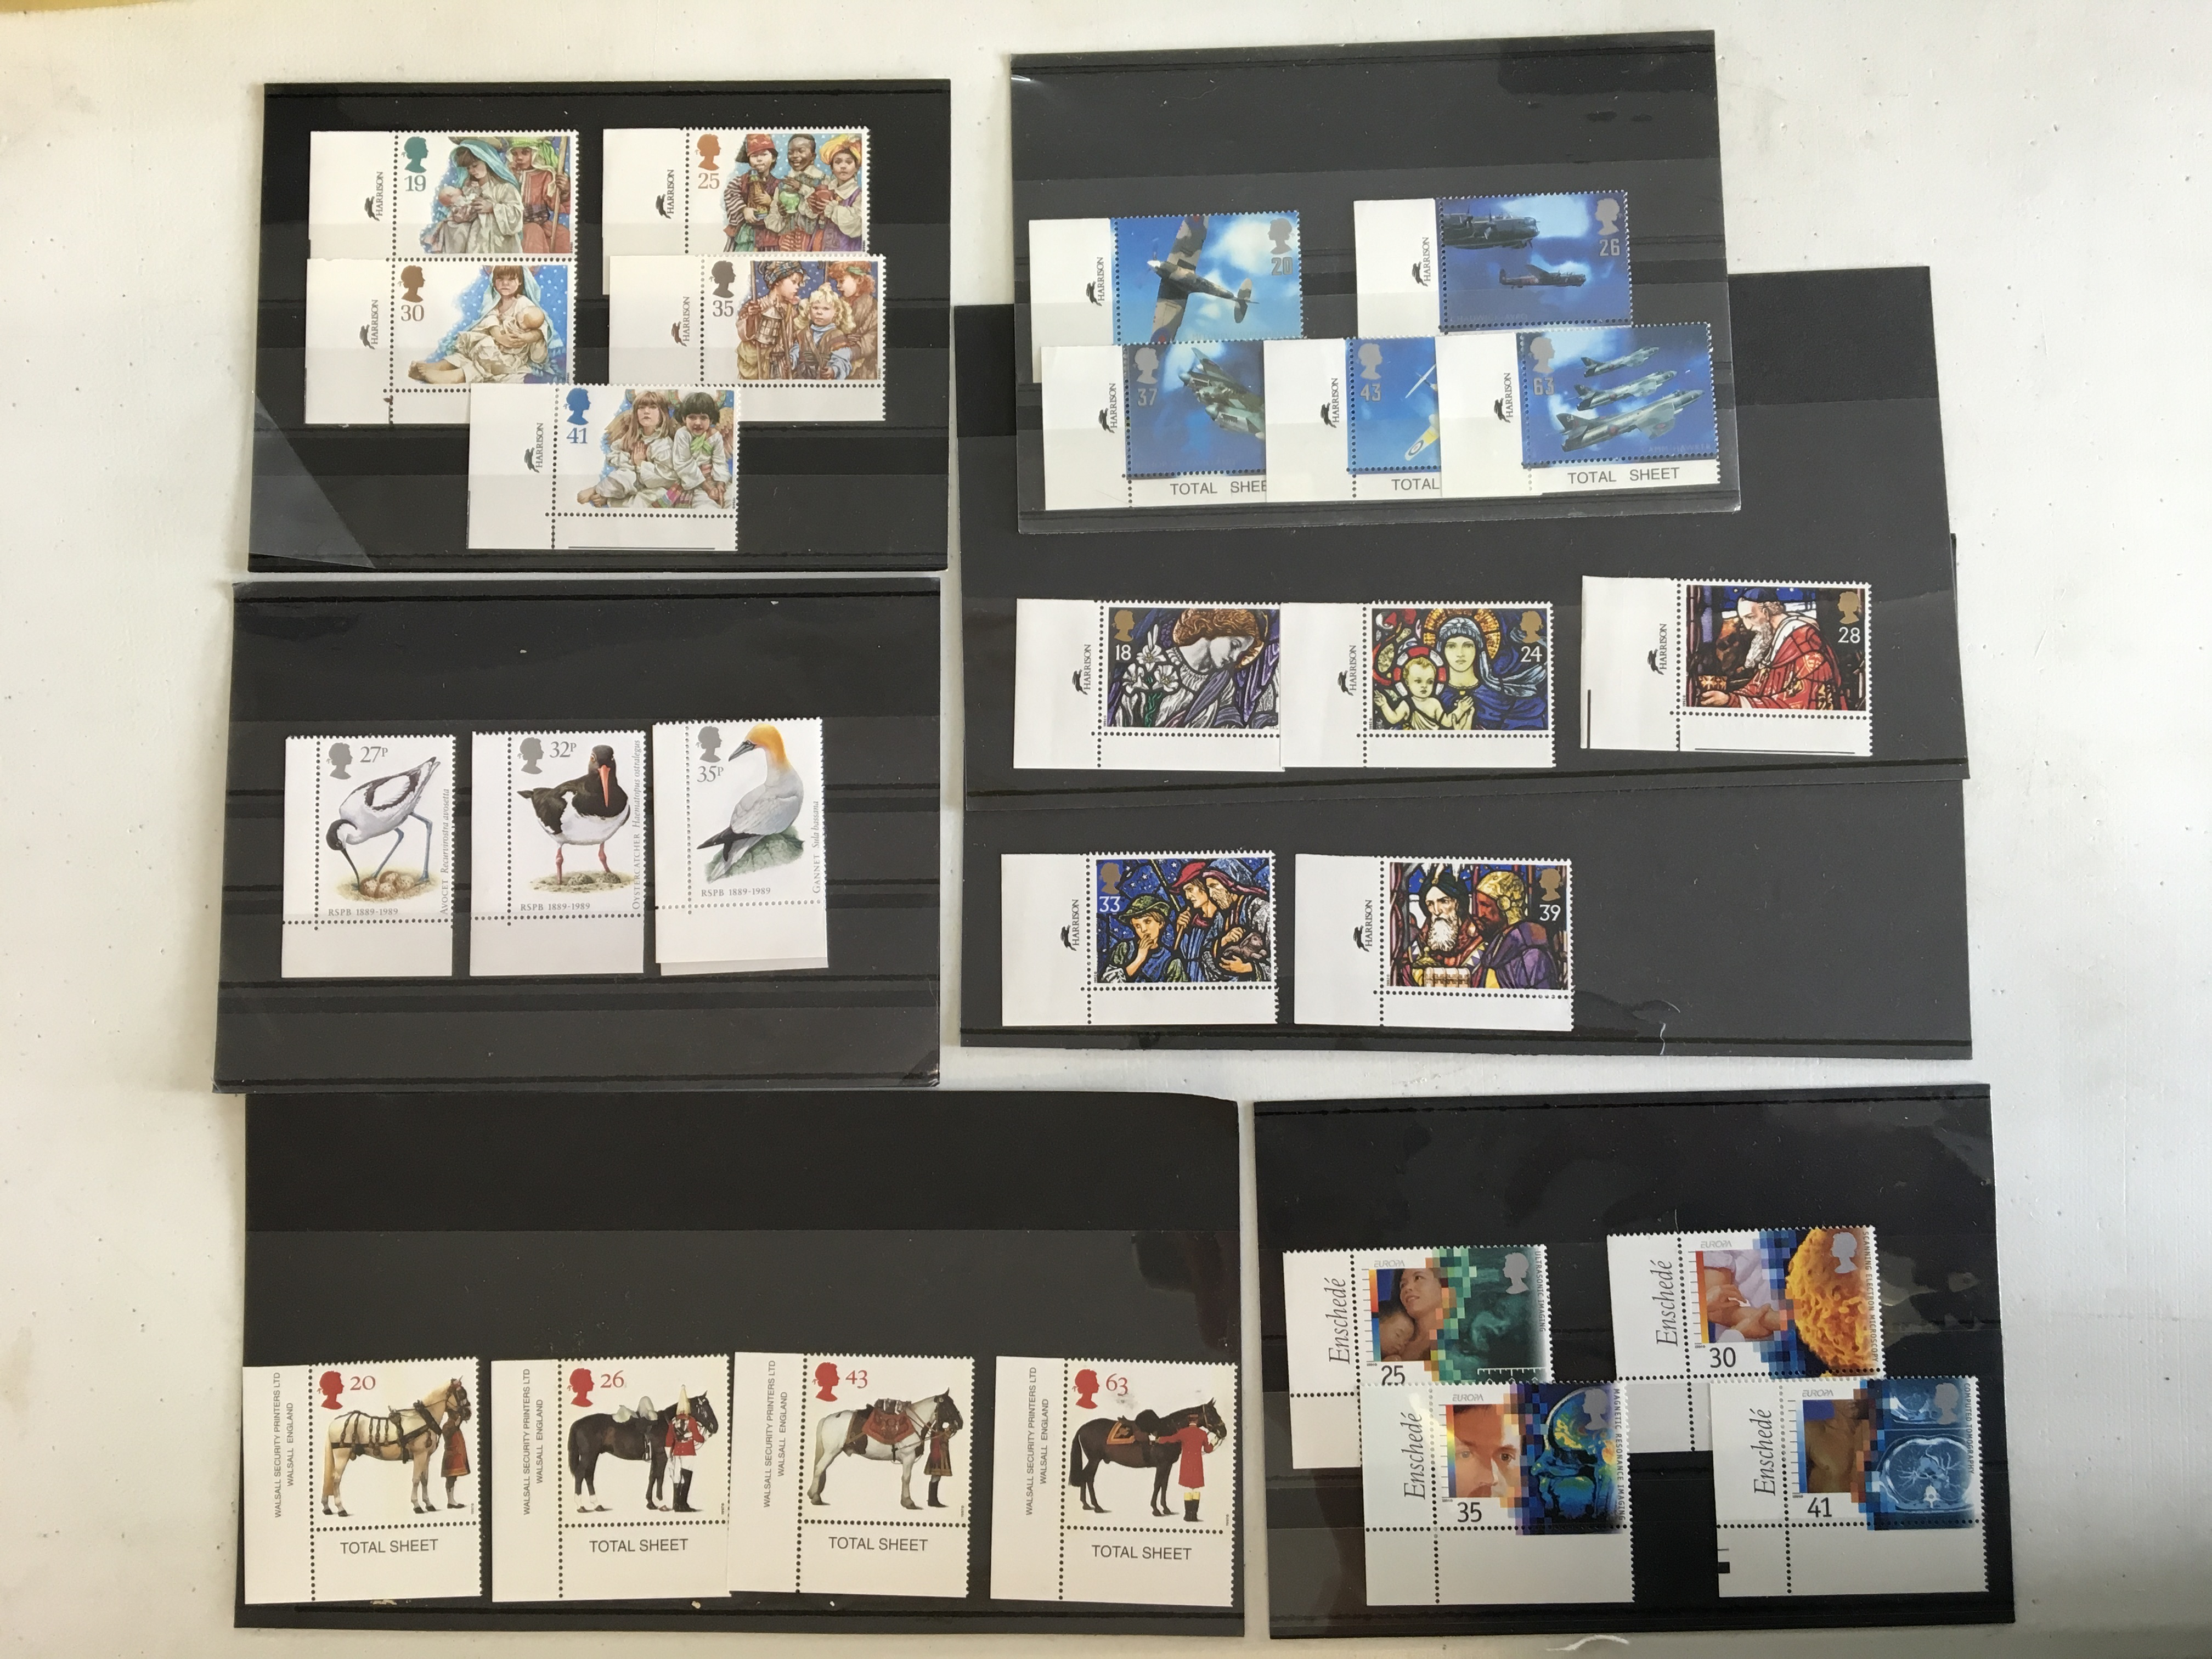 An all different accumulation of modern GB stamps including £5 booklets and presentation packs, face